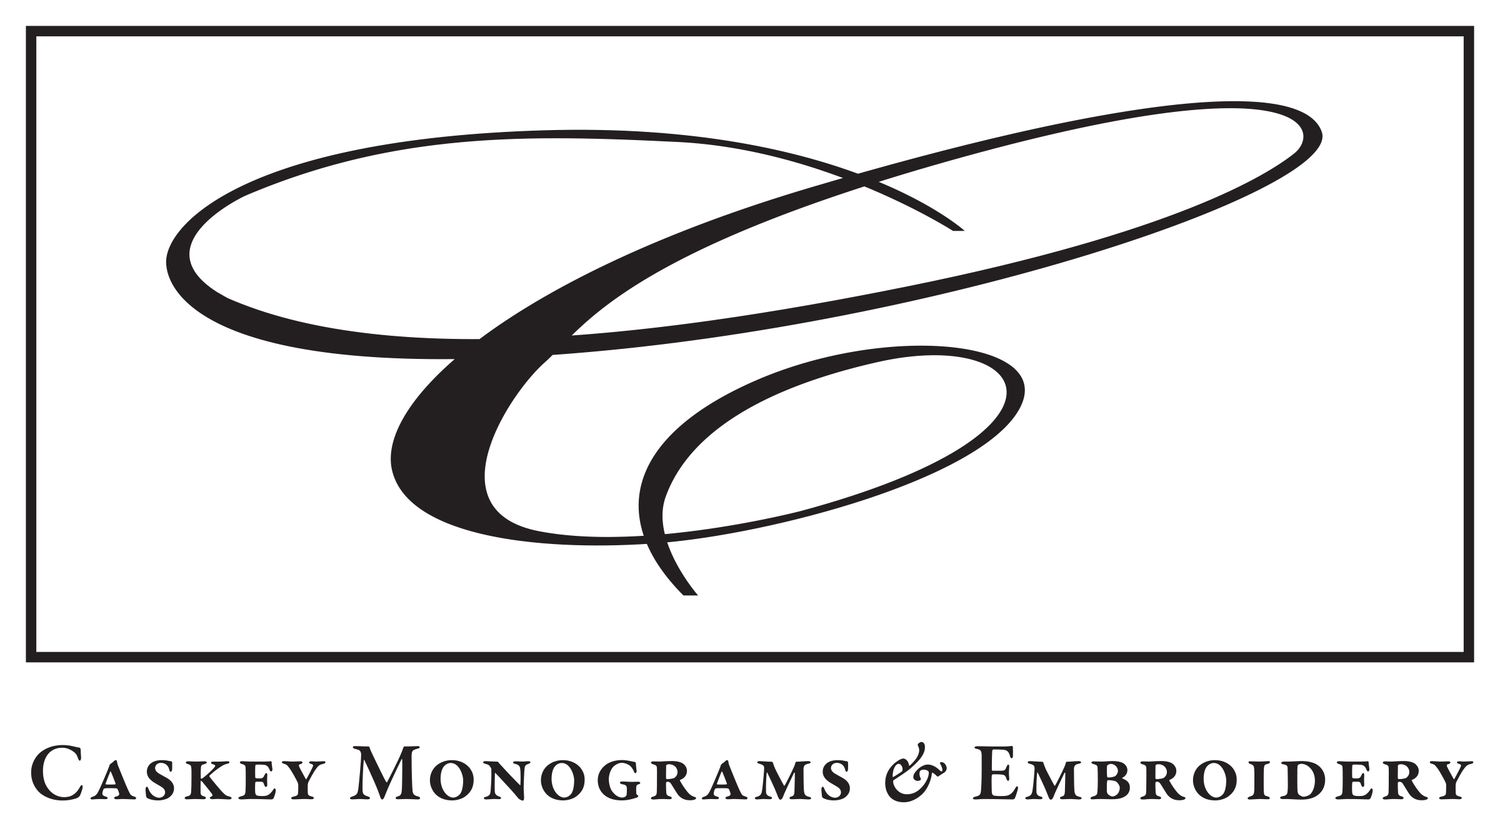 Caskey Monograms & Embroidery